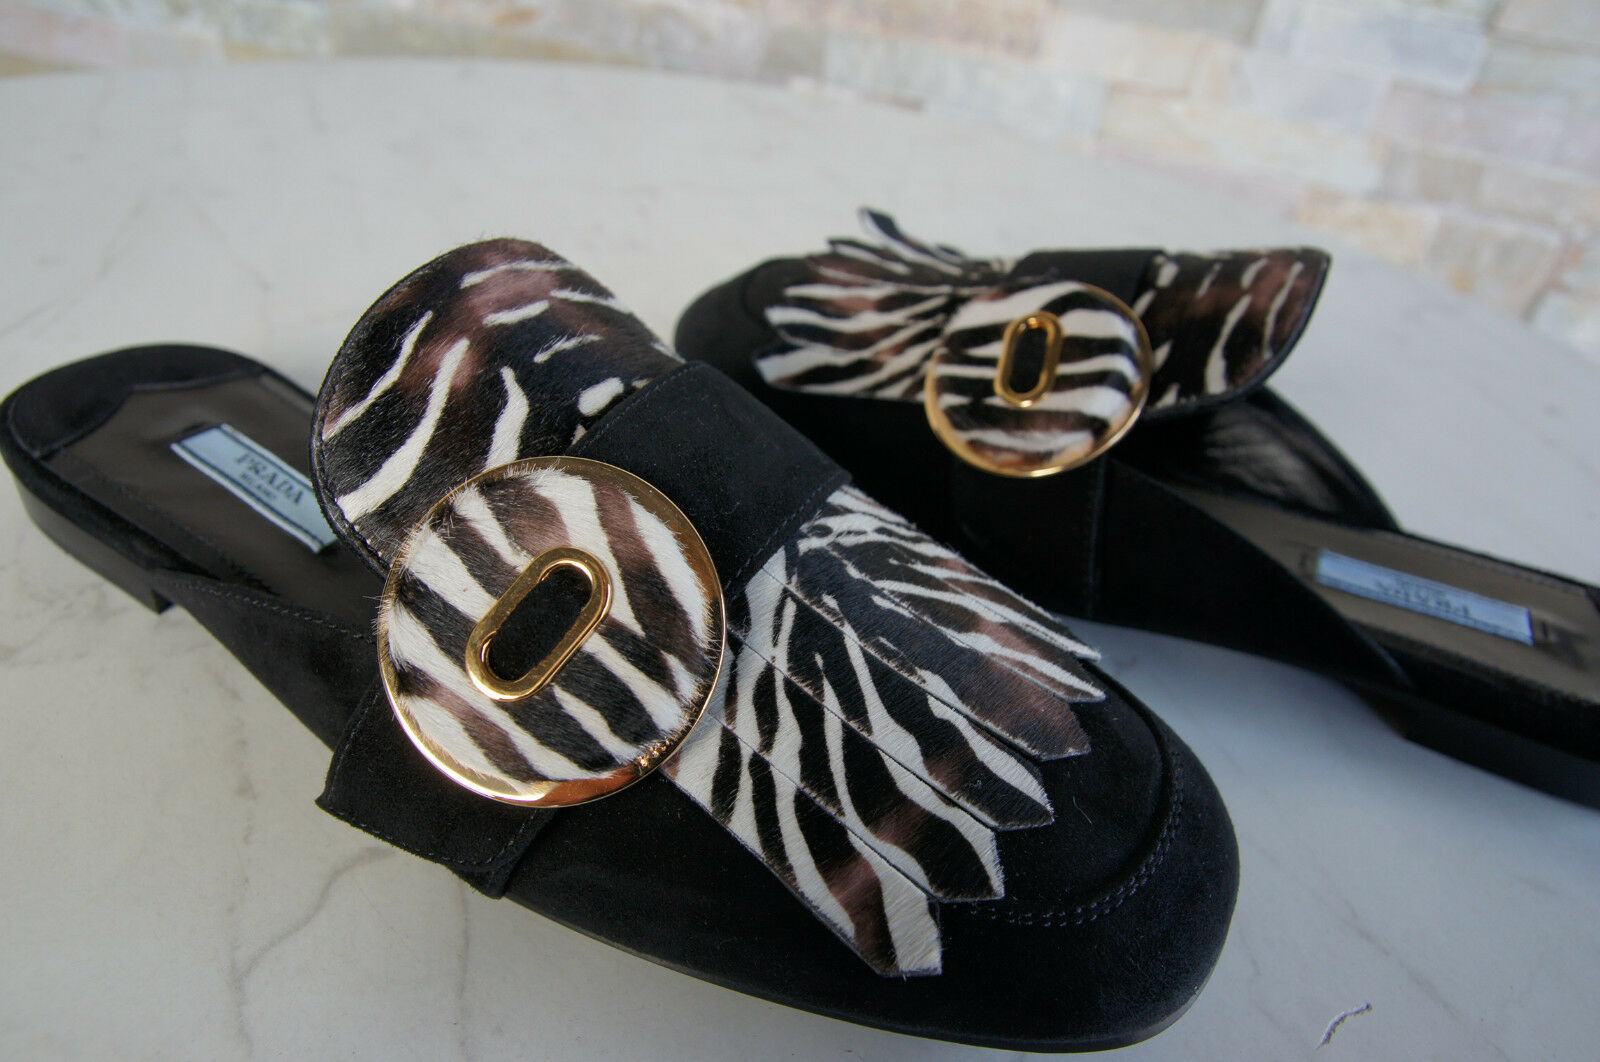 Prada Sz. 40 Slippers Sabots Mules 1D729H shoes shoes shoes Zebra Black New Formerly Rrp 683ff3